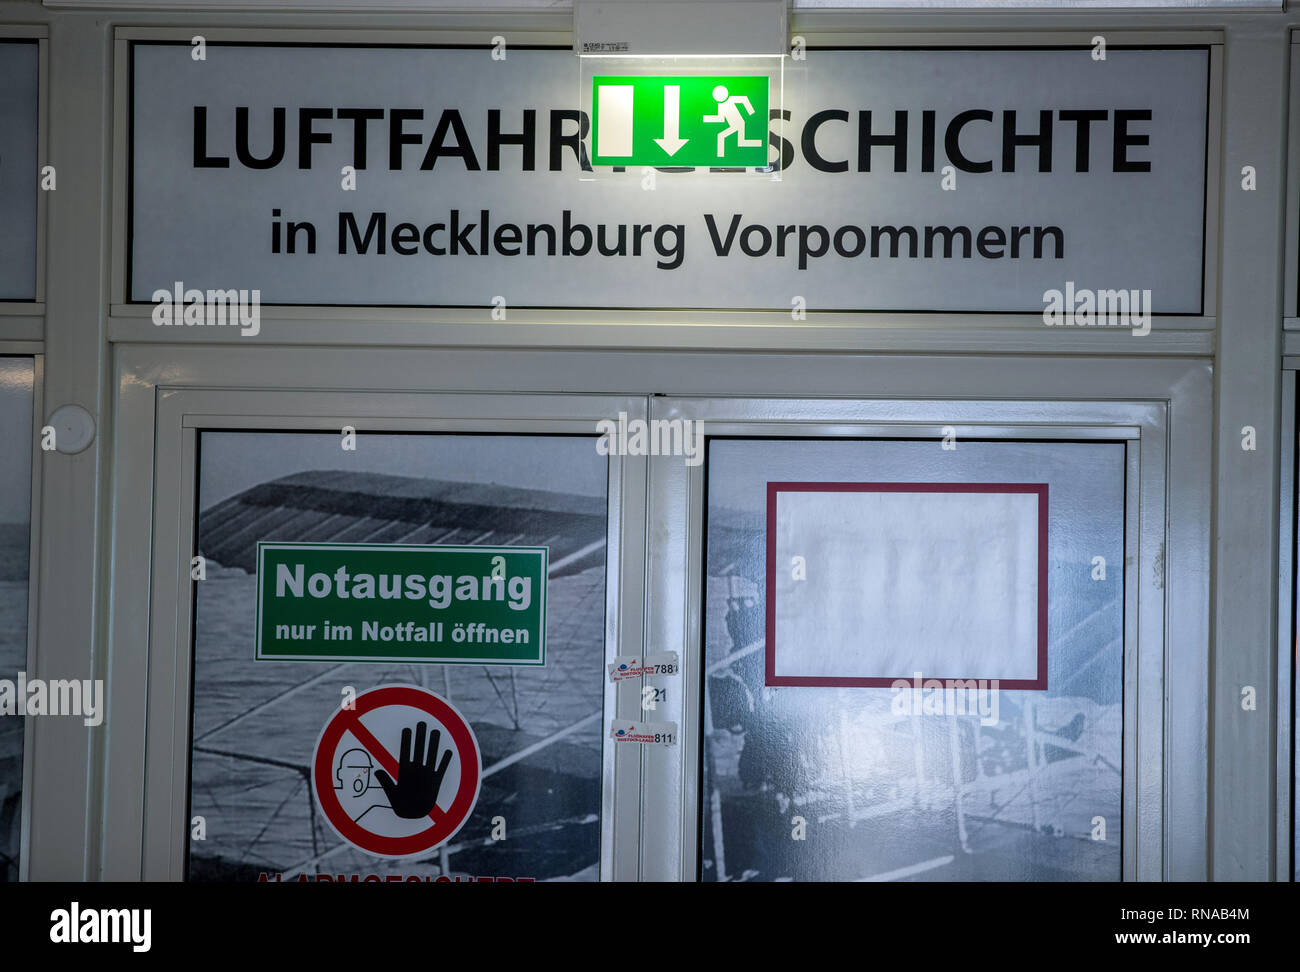 18 February 2019, Mecklenburg-Western Pomerania, Laage: Information signs for the emergency exit hang at the entrance to the aviation history exhibition area in Mecklenburg-Vorpommern at Rostock-Laage Airport. Following the insolvency of the British regional airline Flybmi and the holiday airline Germania, the airport's shareholders are discussing the economic situation. For the airport Rostock-Laage the Flybmi flights to Munich were the last regular connections. Photo: Jens Büttner/dpa-Zentralbild/ZB - Stock Image